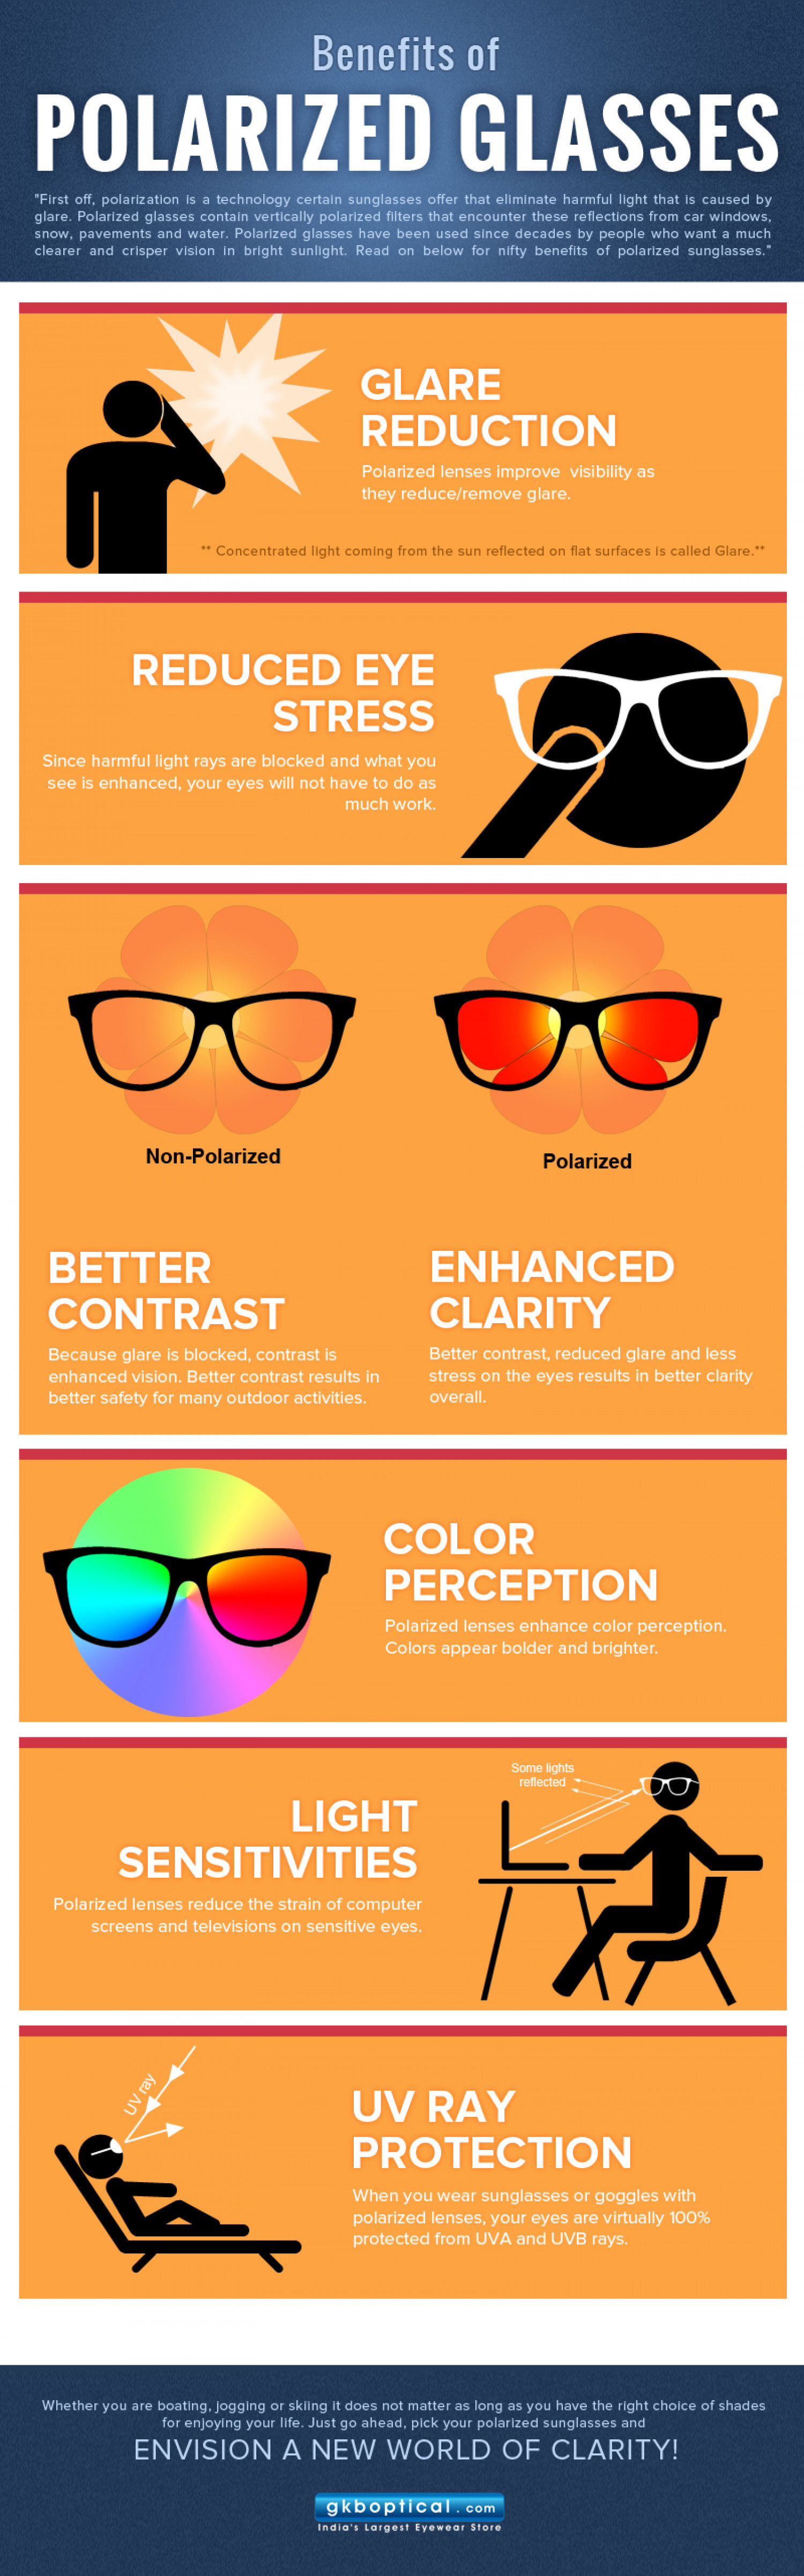 Benefits of Polarized Sunglasses Infographic